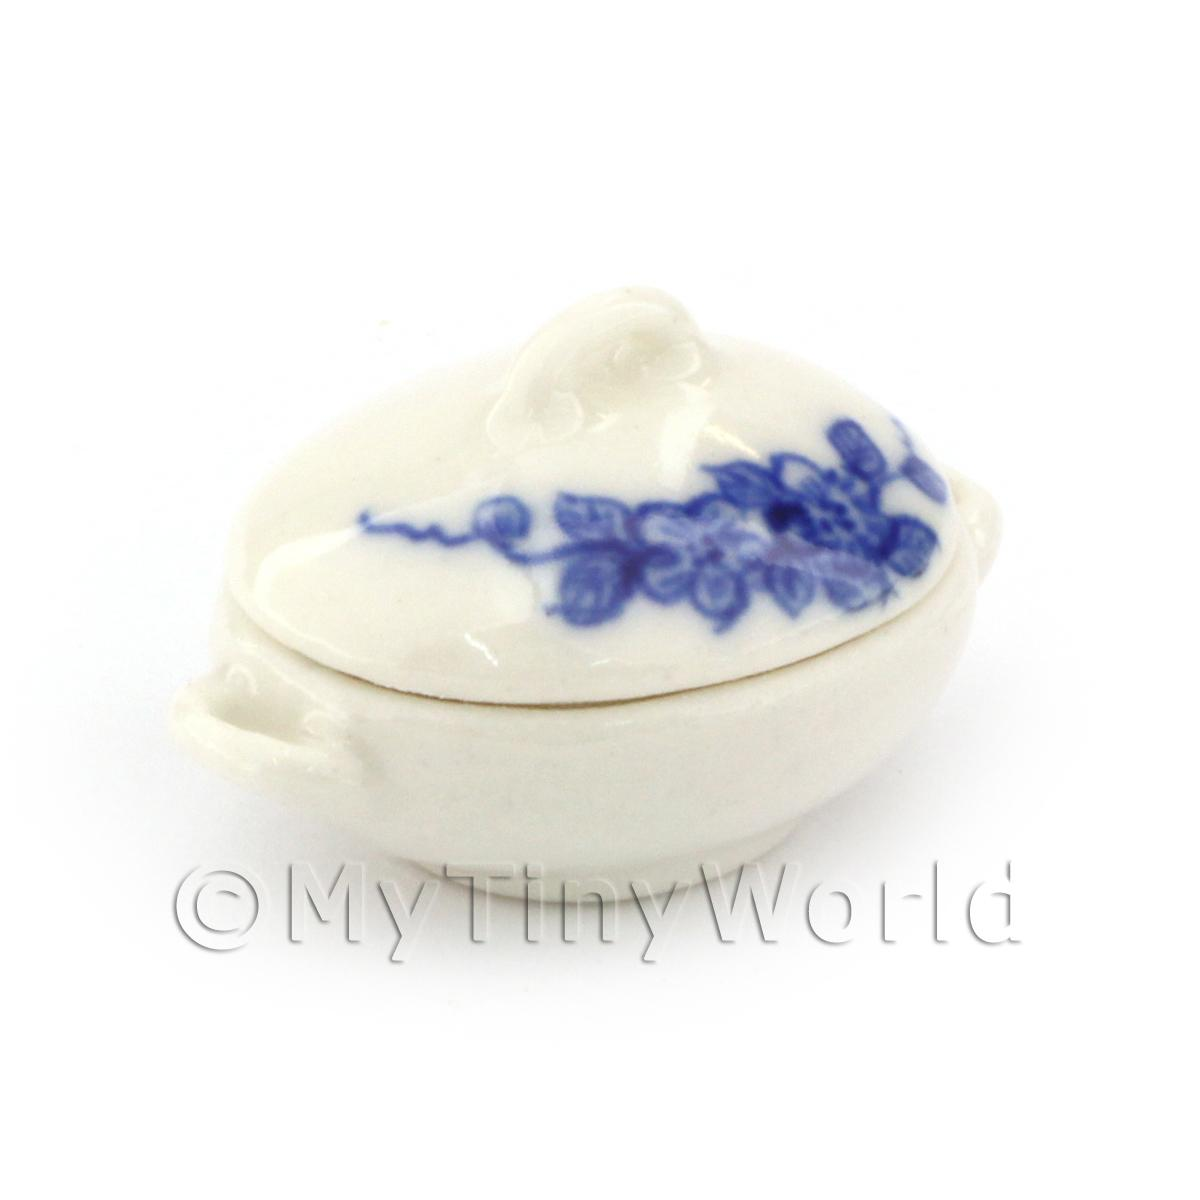 Dolls House Miniature Hand Painted Vegetable Serving Dish